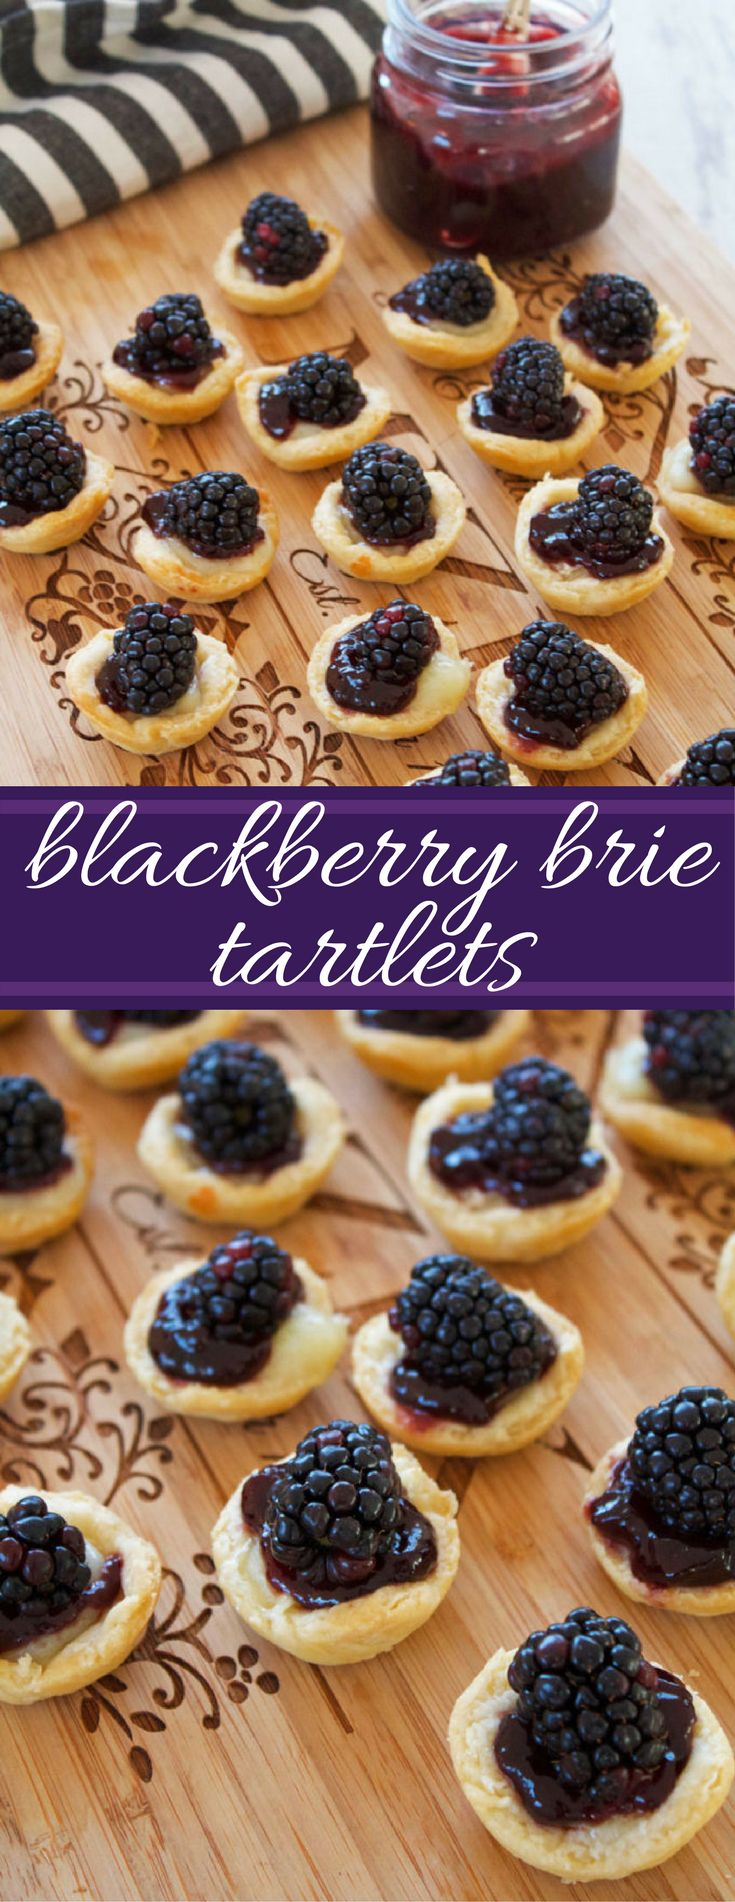 blackberry brie tartlets | appetizers | appetizer recipes | blackberries | brie cheese | tartlets | mini pies | mini tarts | Hors d'oeuvre | easy appetizer | 20 minute recipes | holiday appetizers